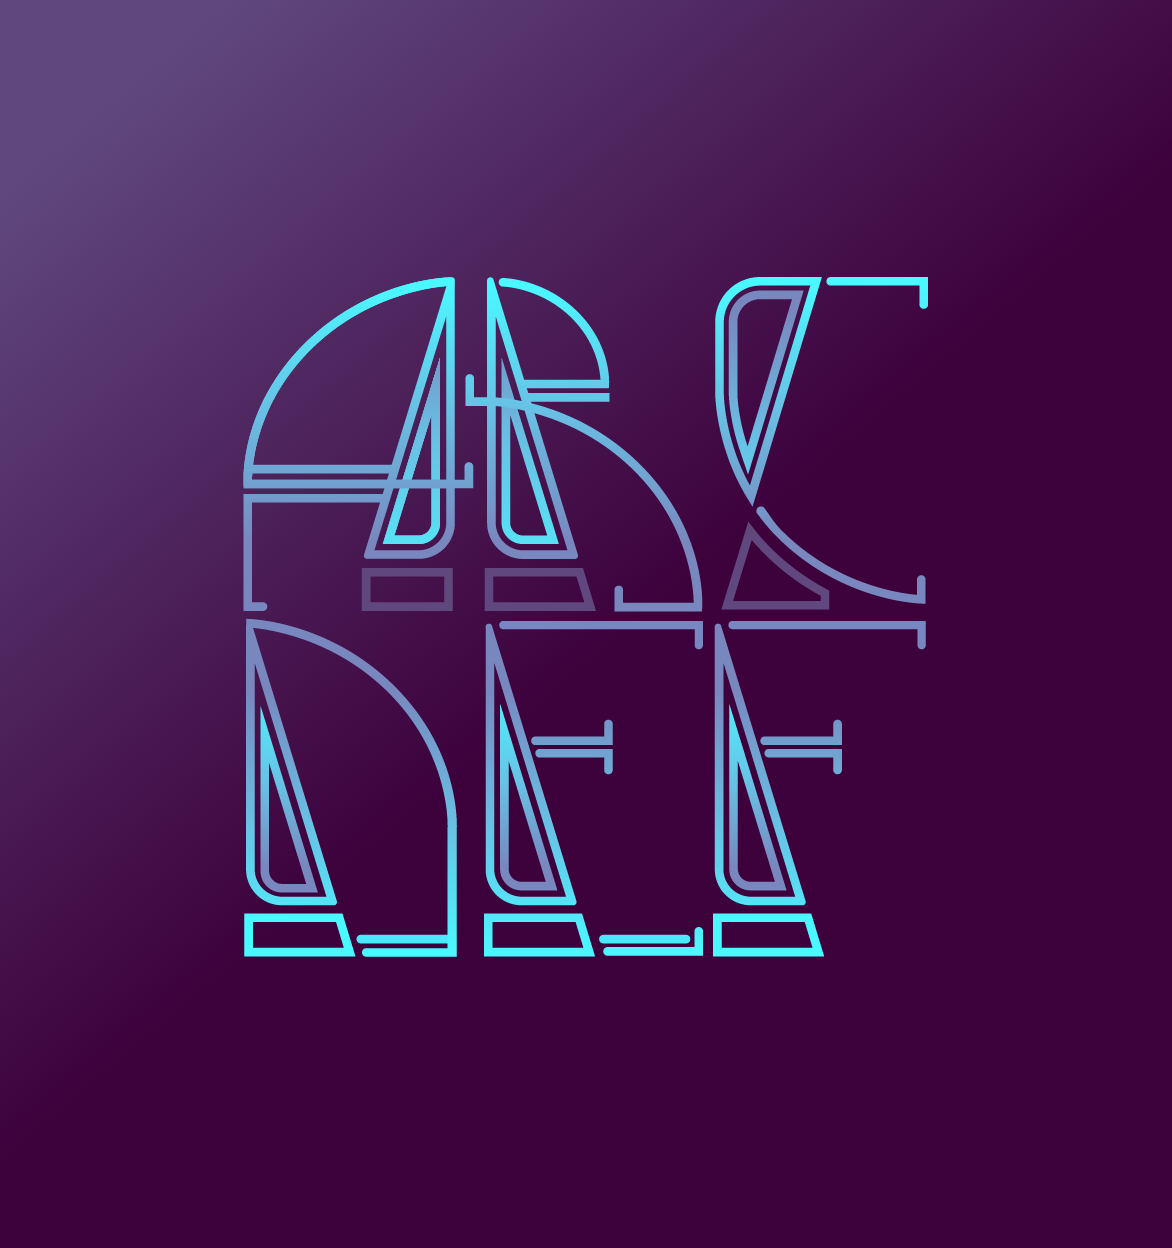 abcdef design typography